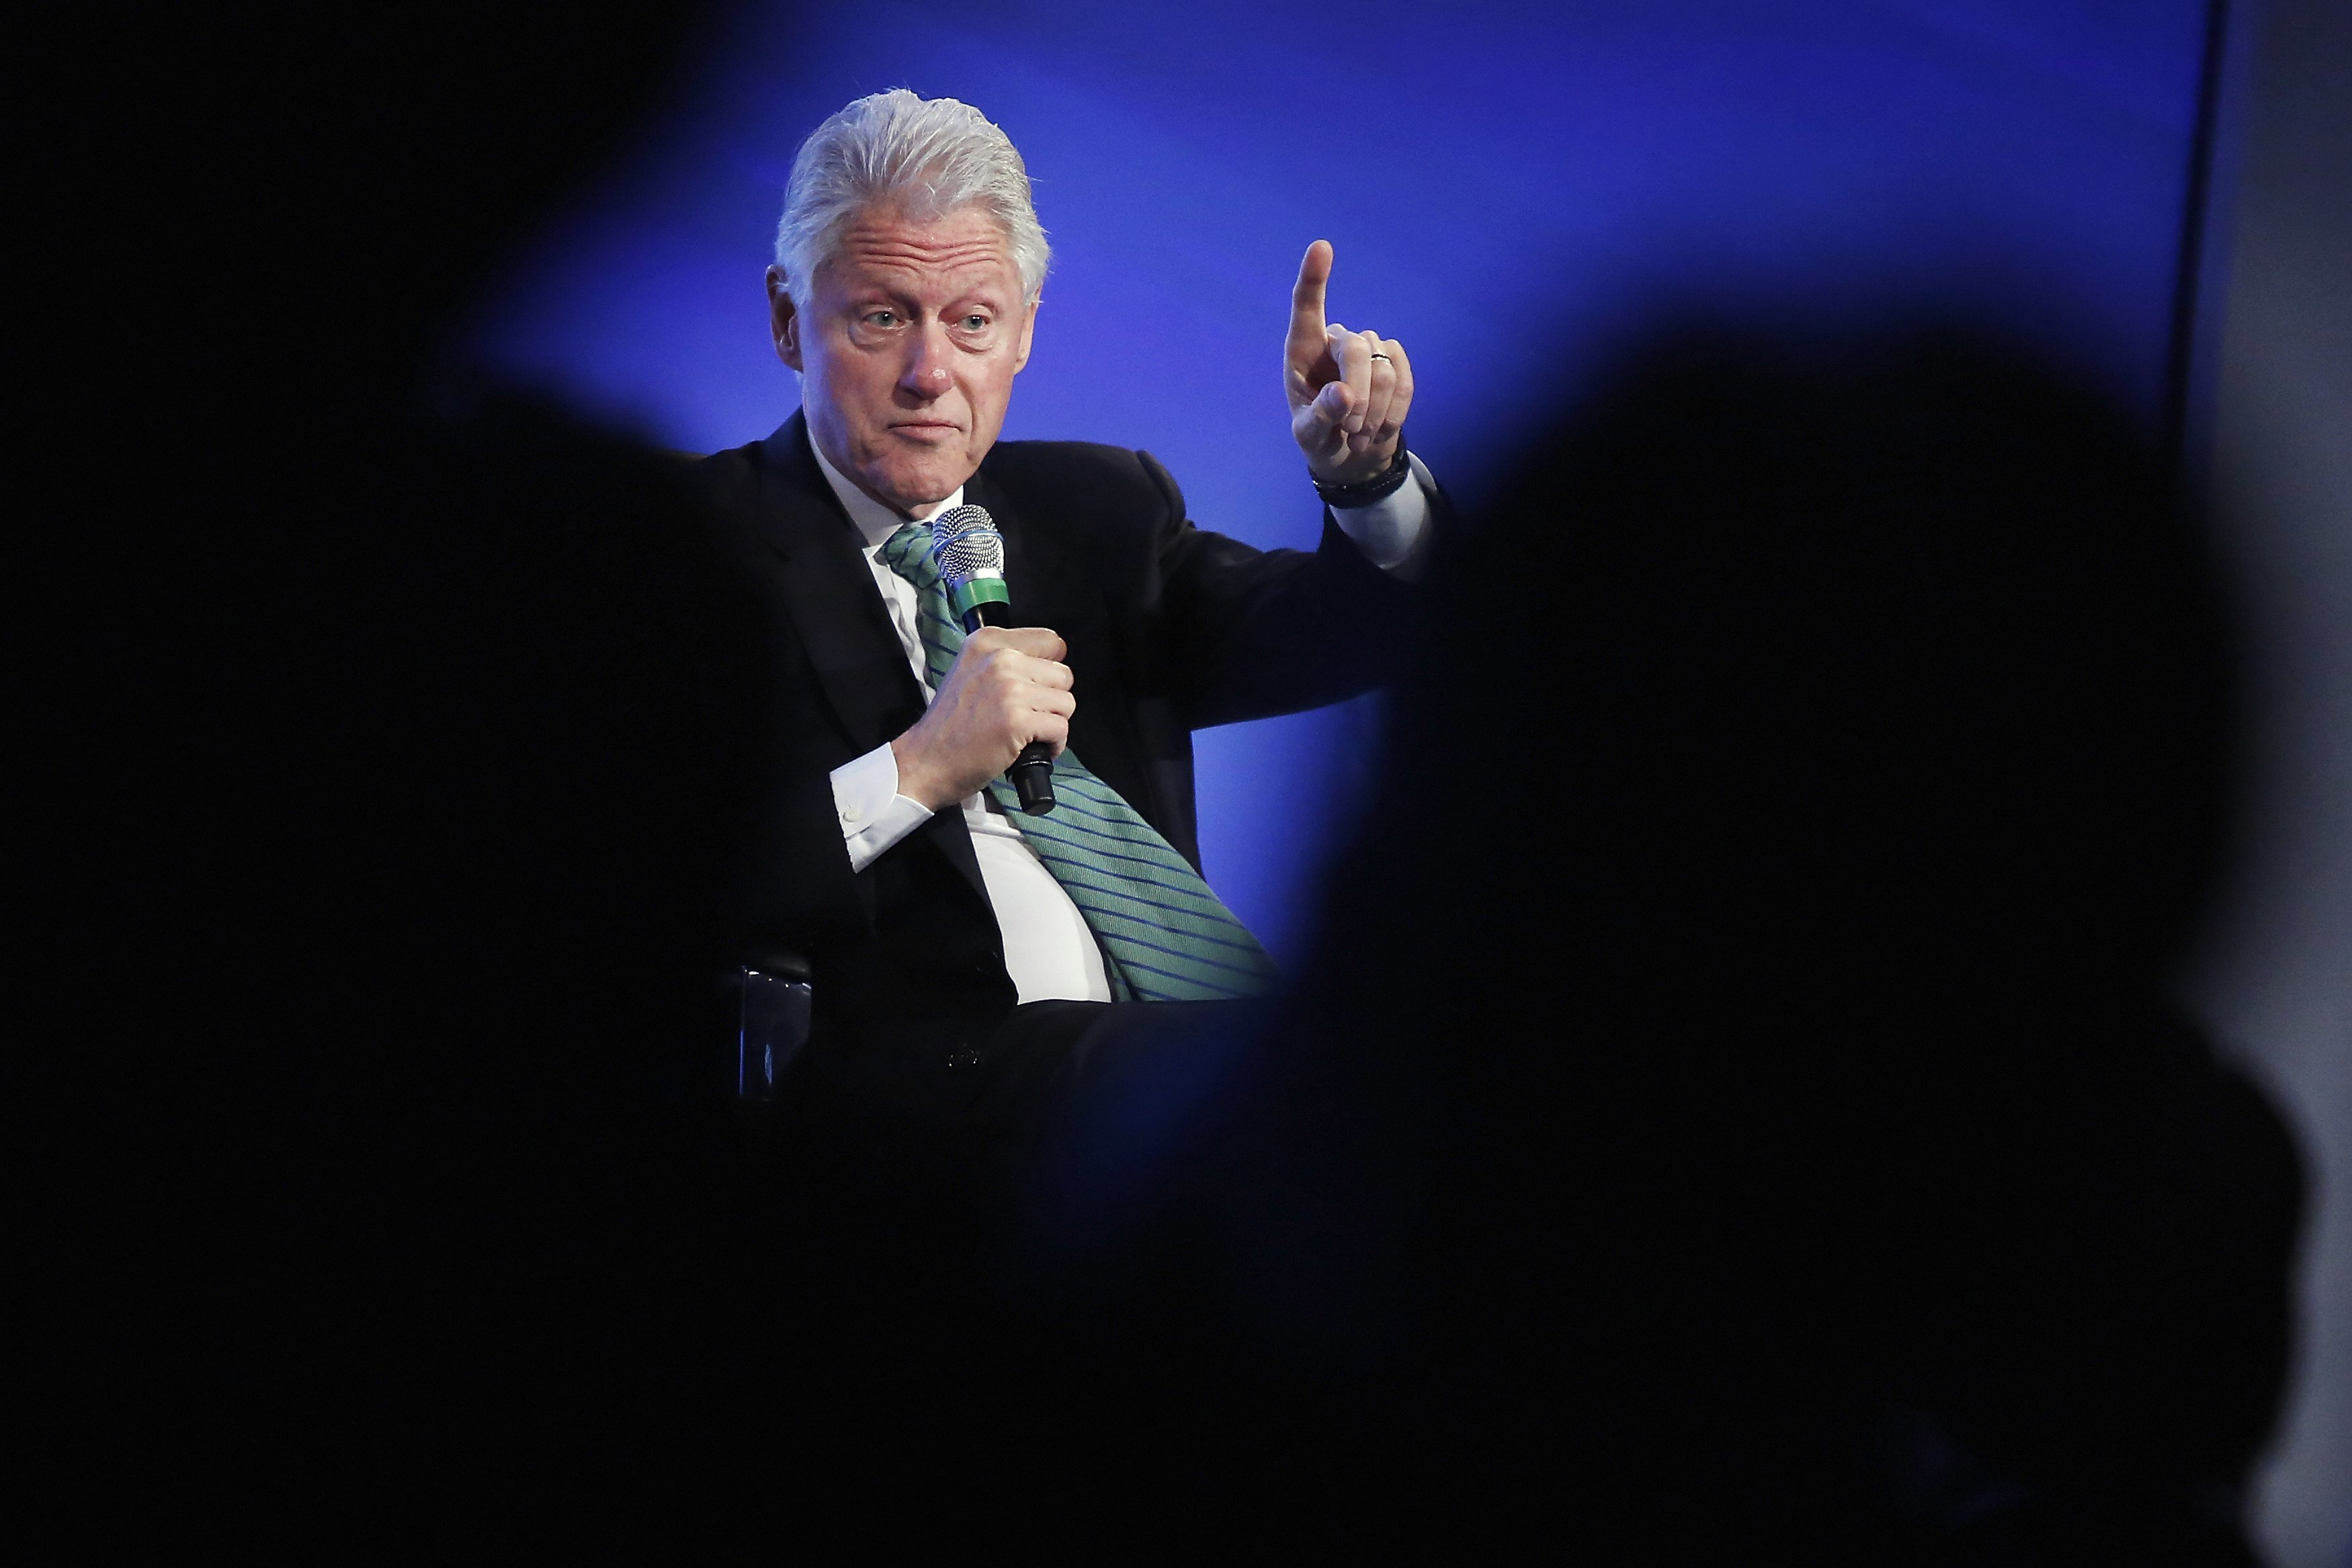 Former President Bill Clinton gestures during an onstage interview at the 2014 Peterson Foundation Fiscal Summit in Washington May 14, 2014.